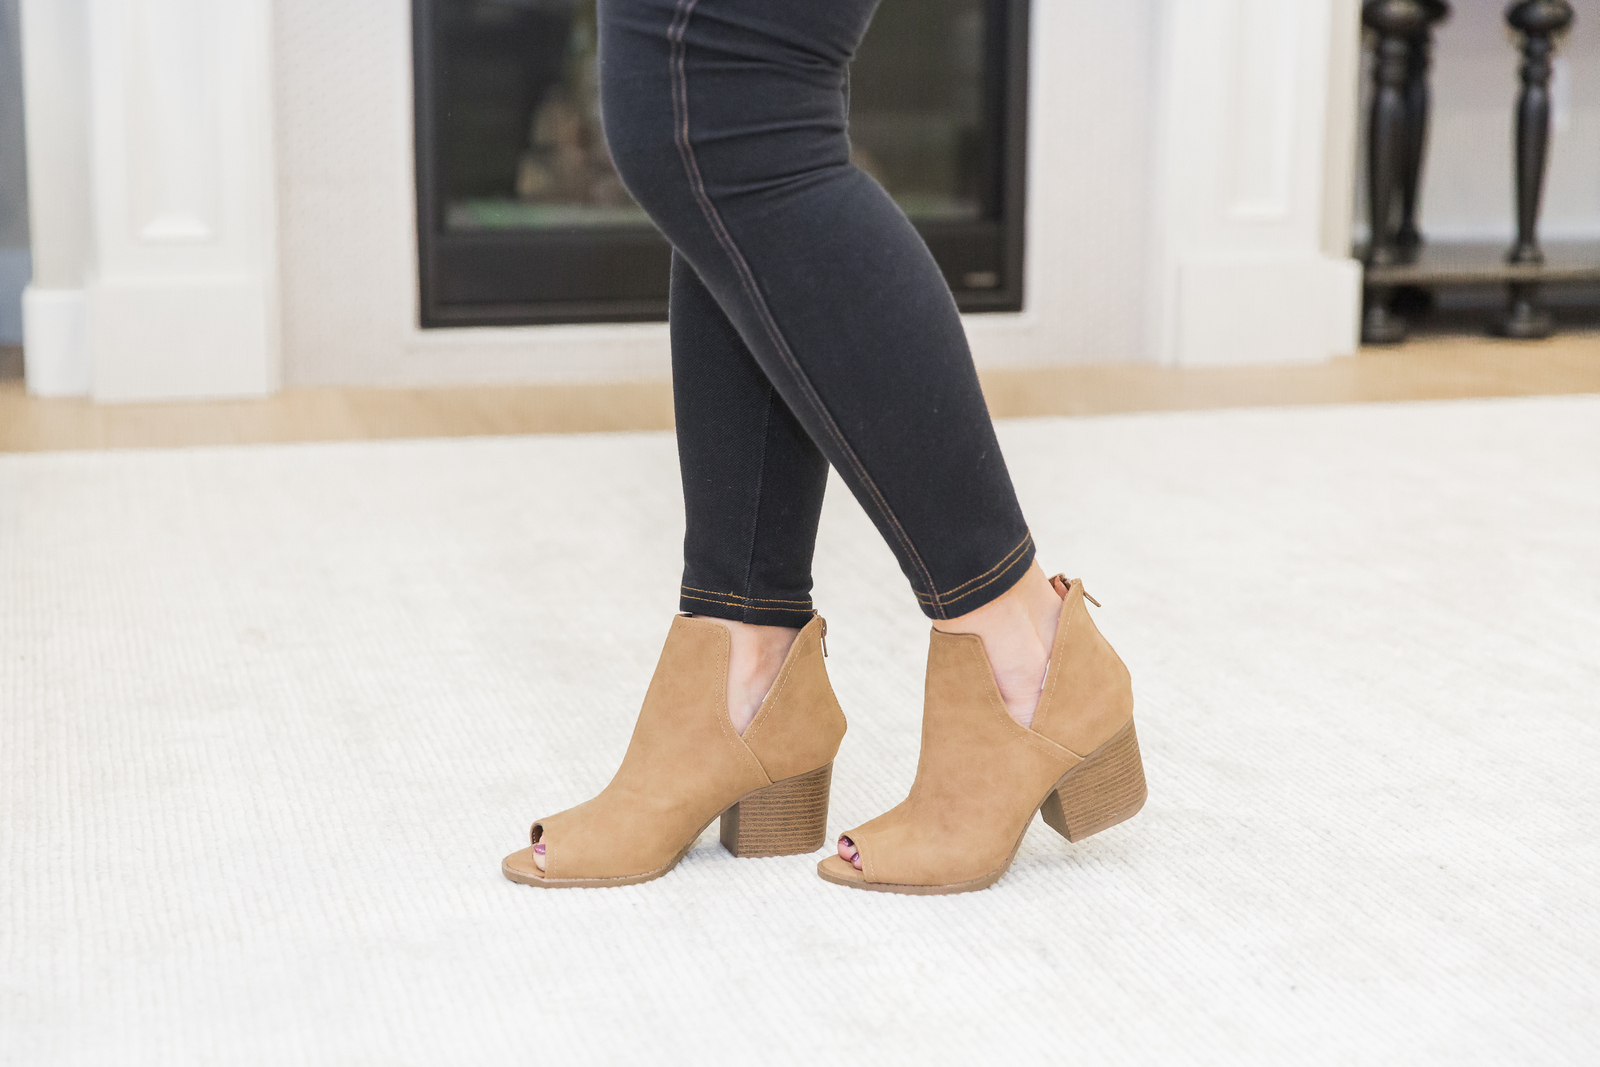 Brickyard Buffalo Guest Editor Week - Sandy A La Mode: Cut out booties